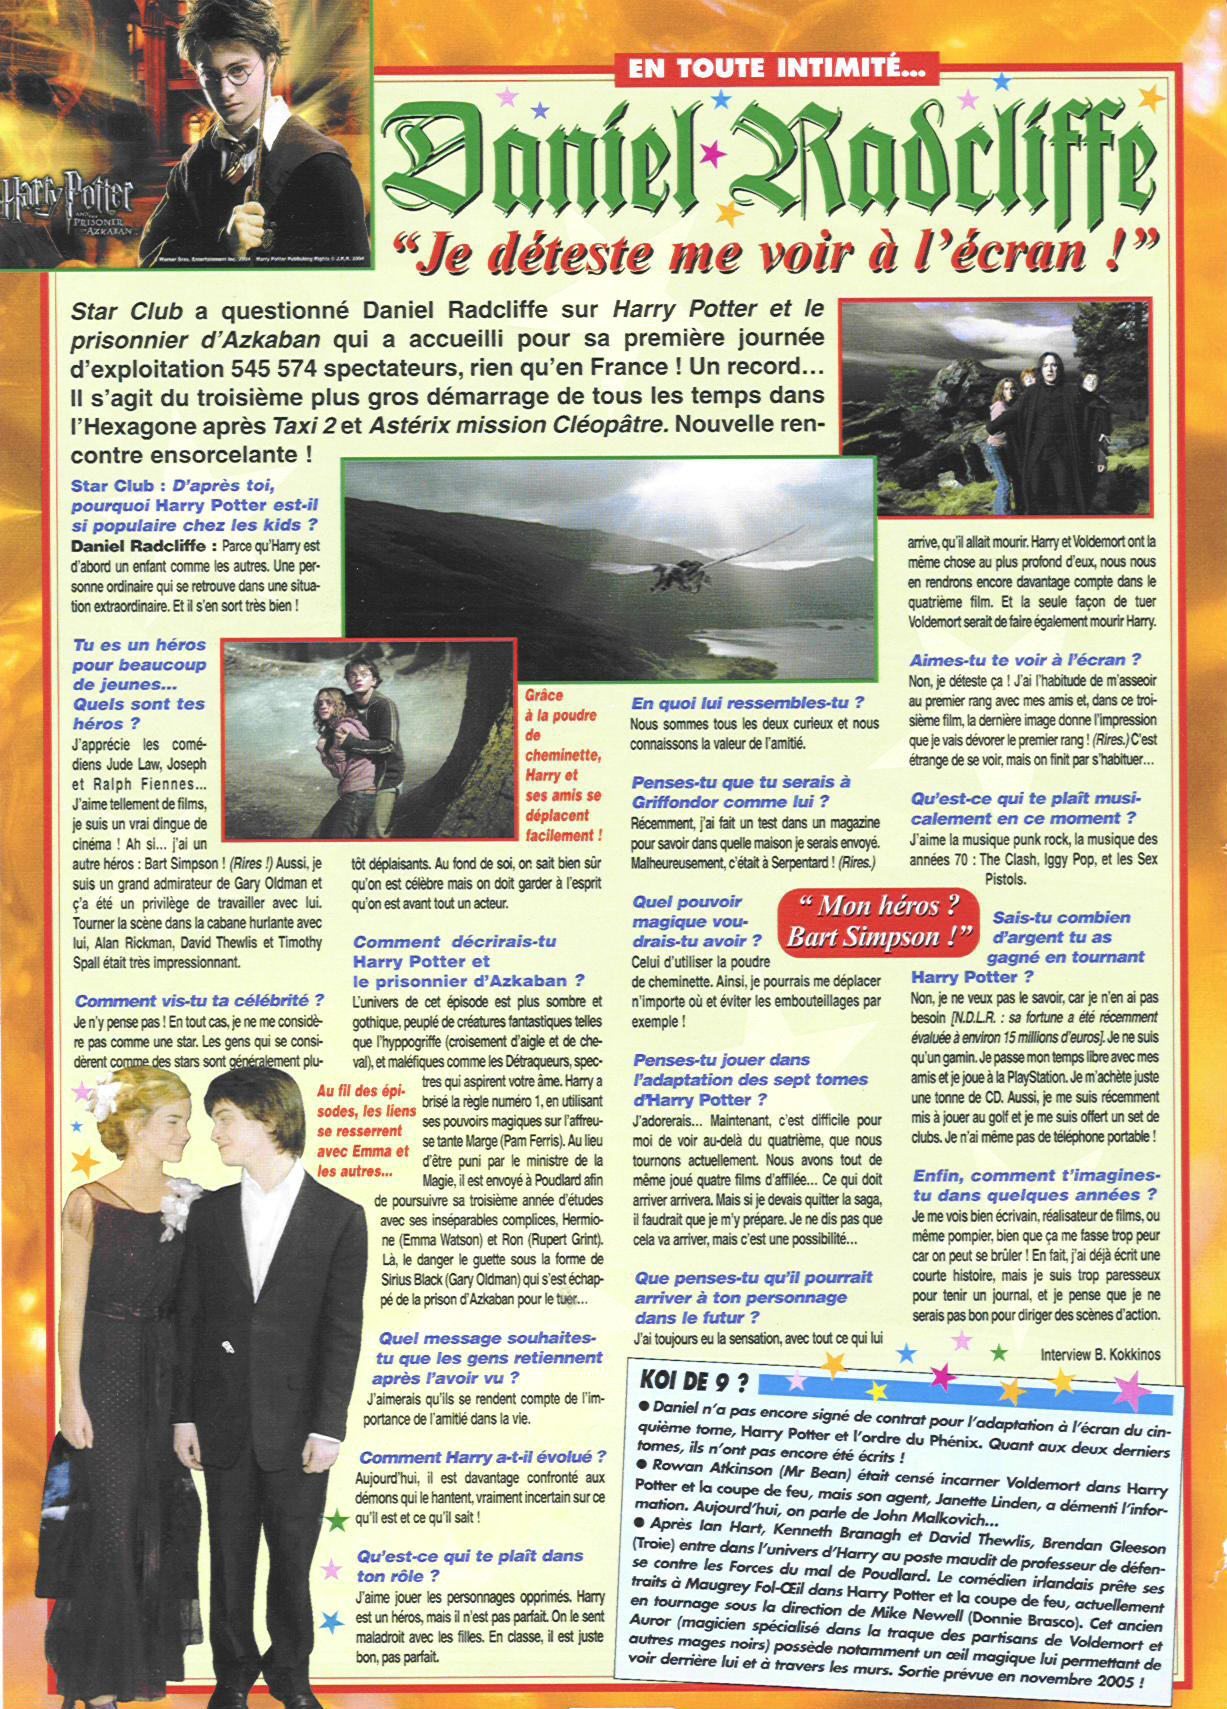 interview star club daniel radcliffe ados fr juillet2004starclub1